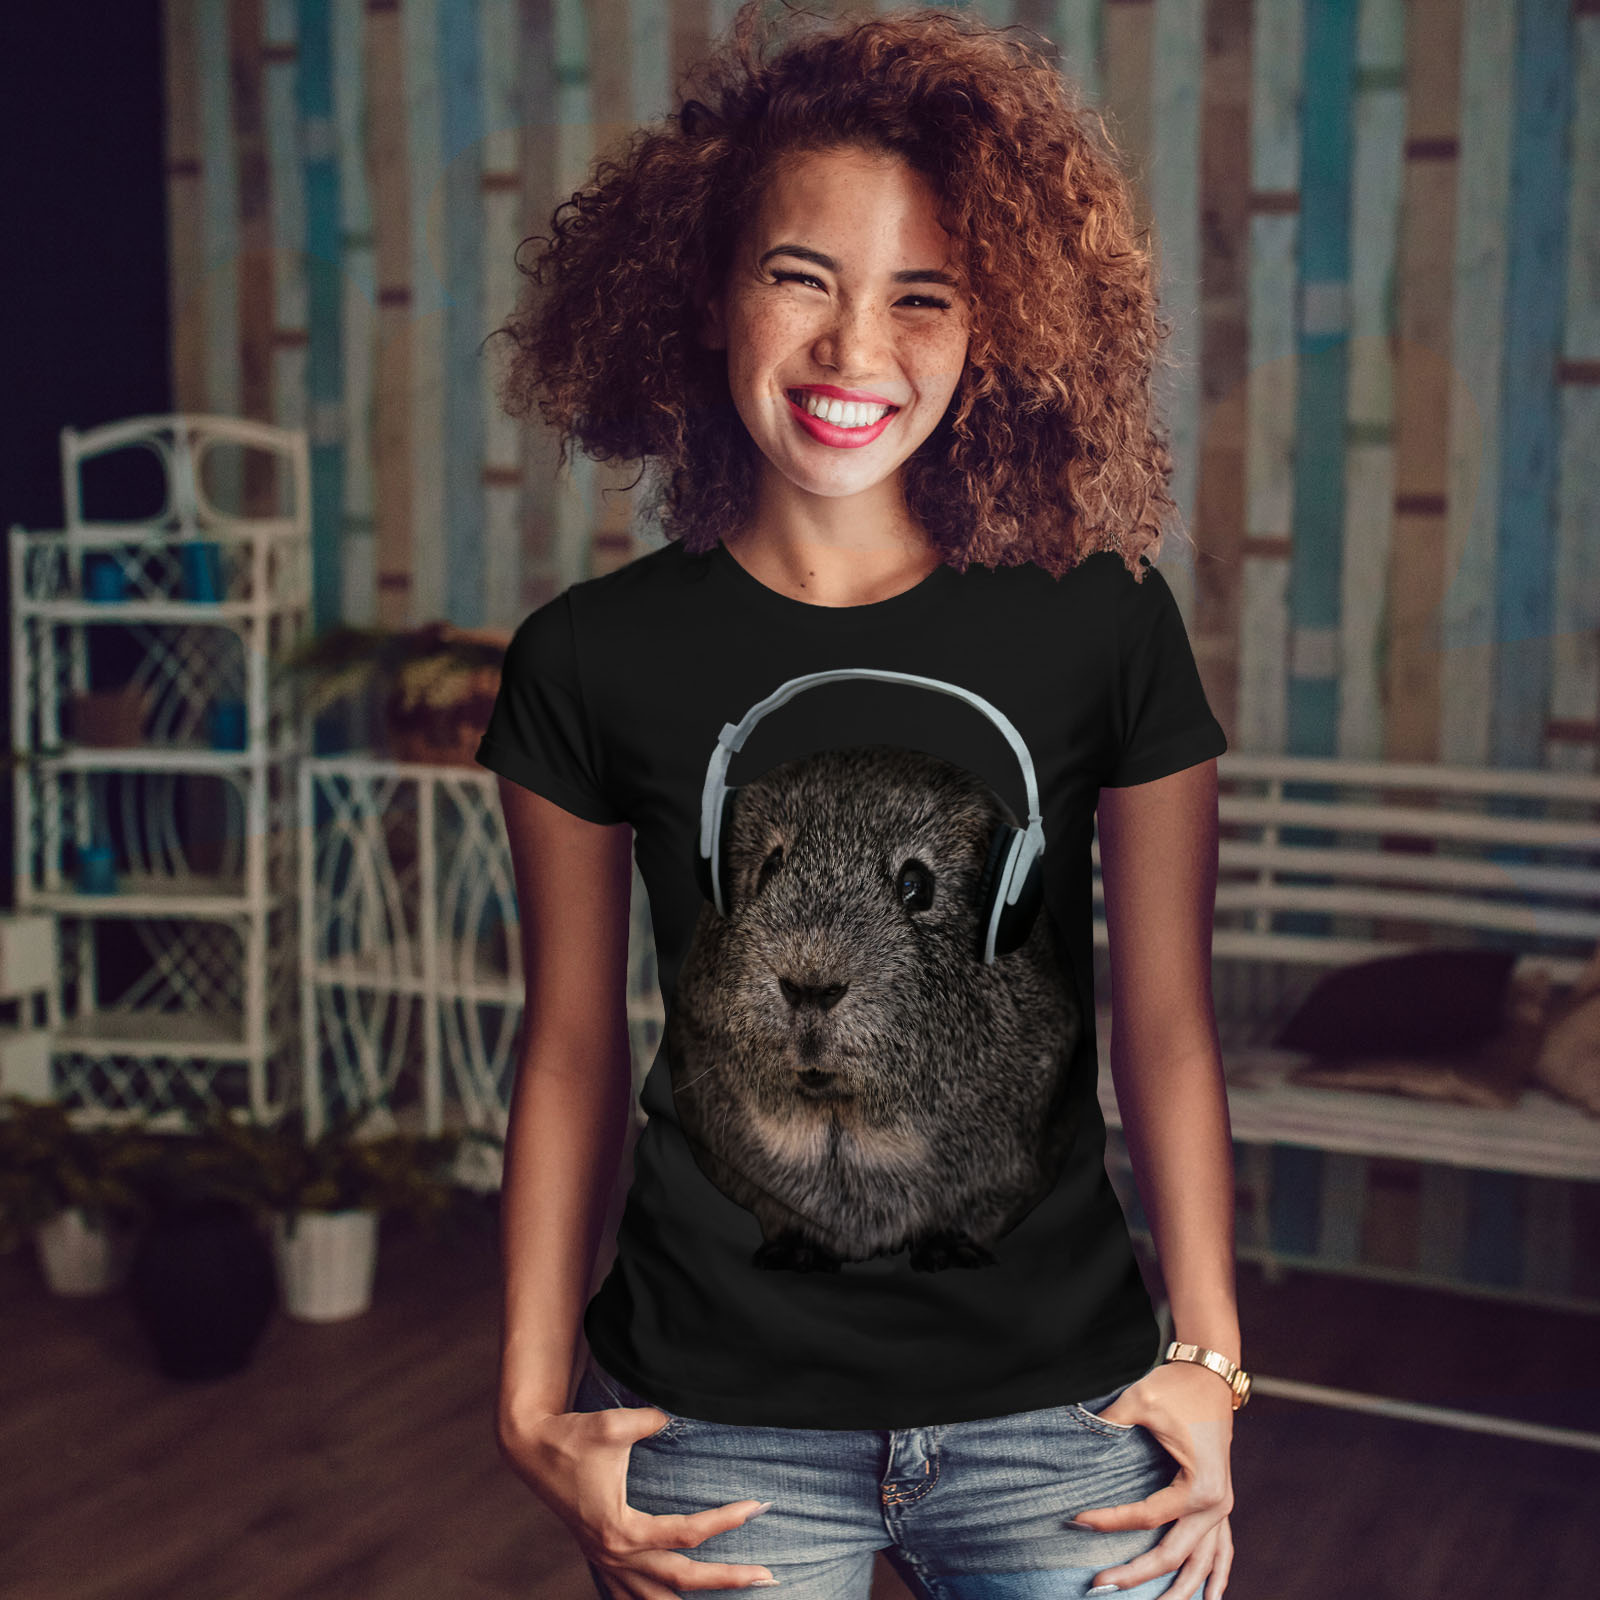 Wellcoda-Guinea-Maiale-BEAT-Divertente-T-shirt-da-donna-design-casual-Animale-Stampato-Tee miniatura 4